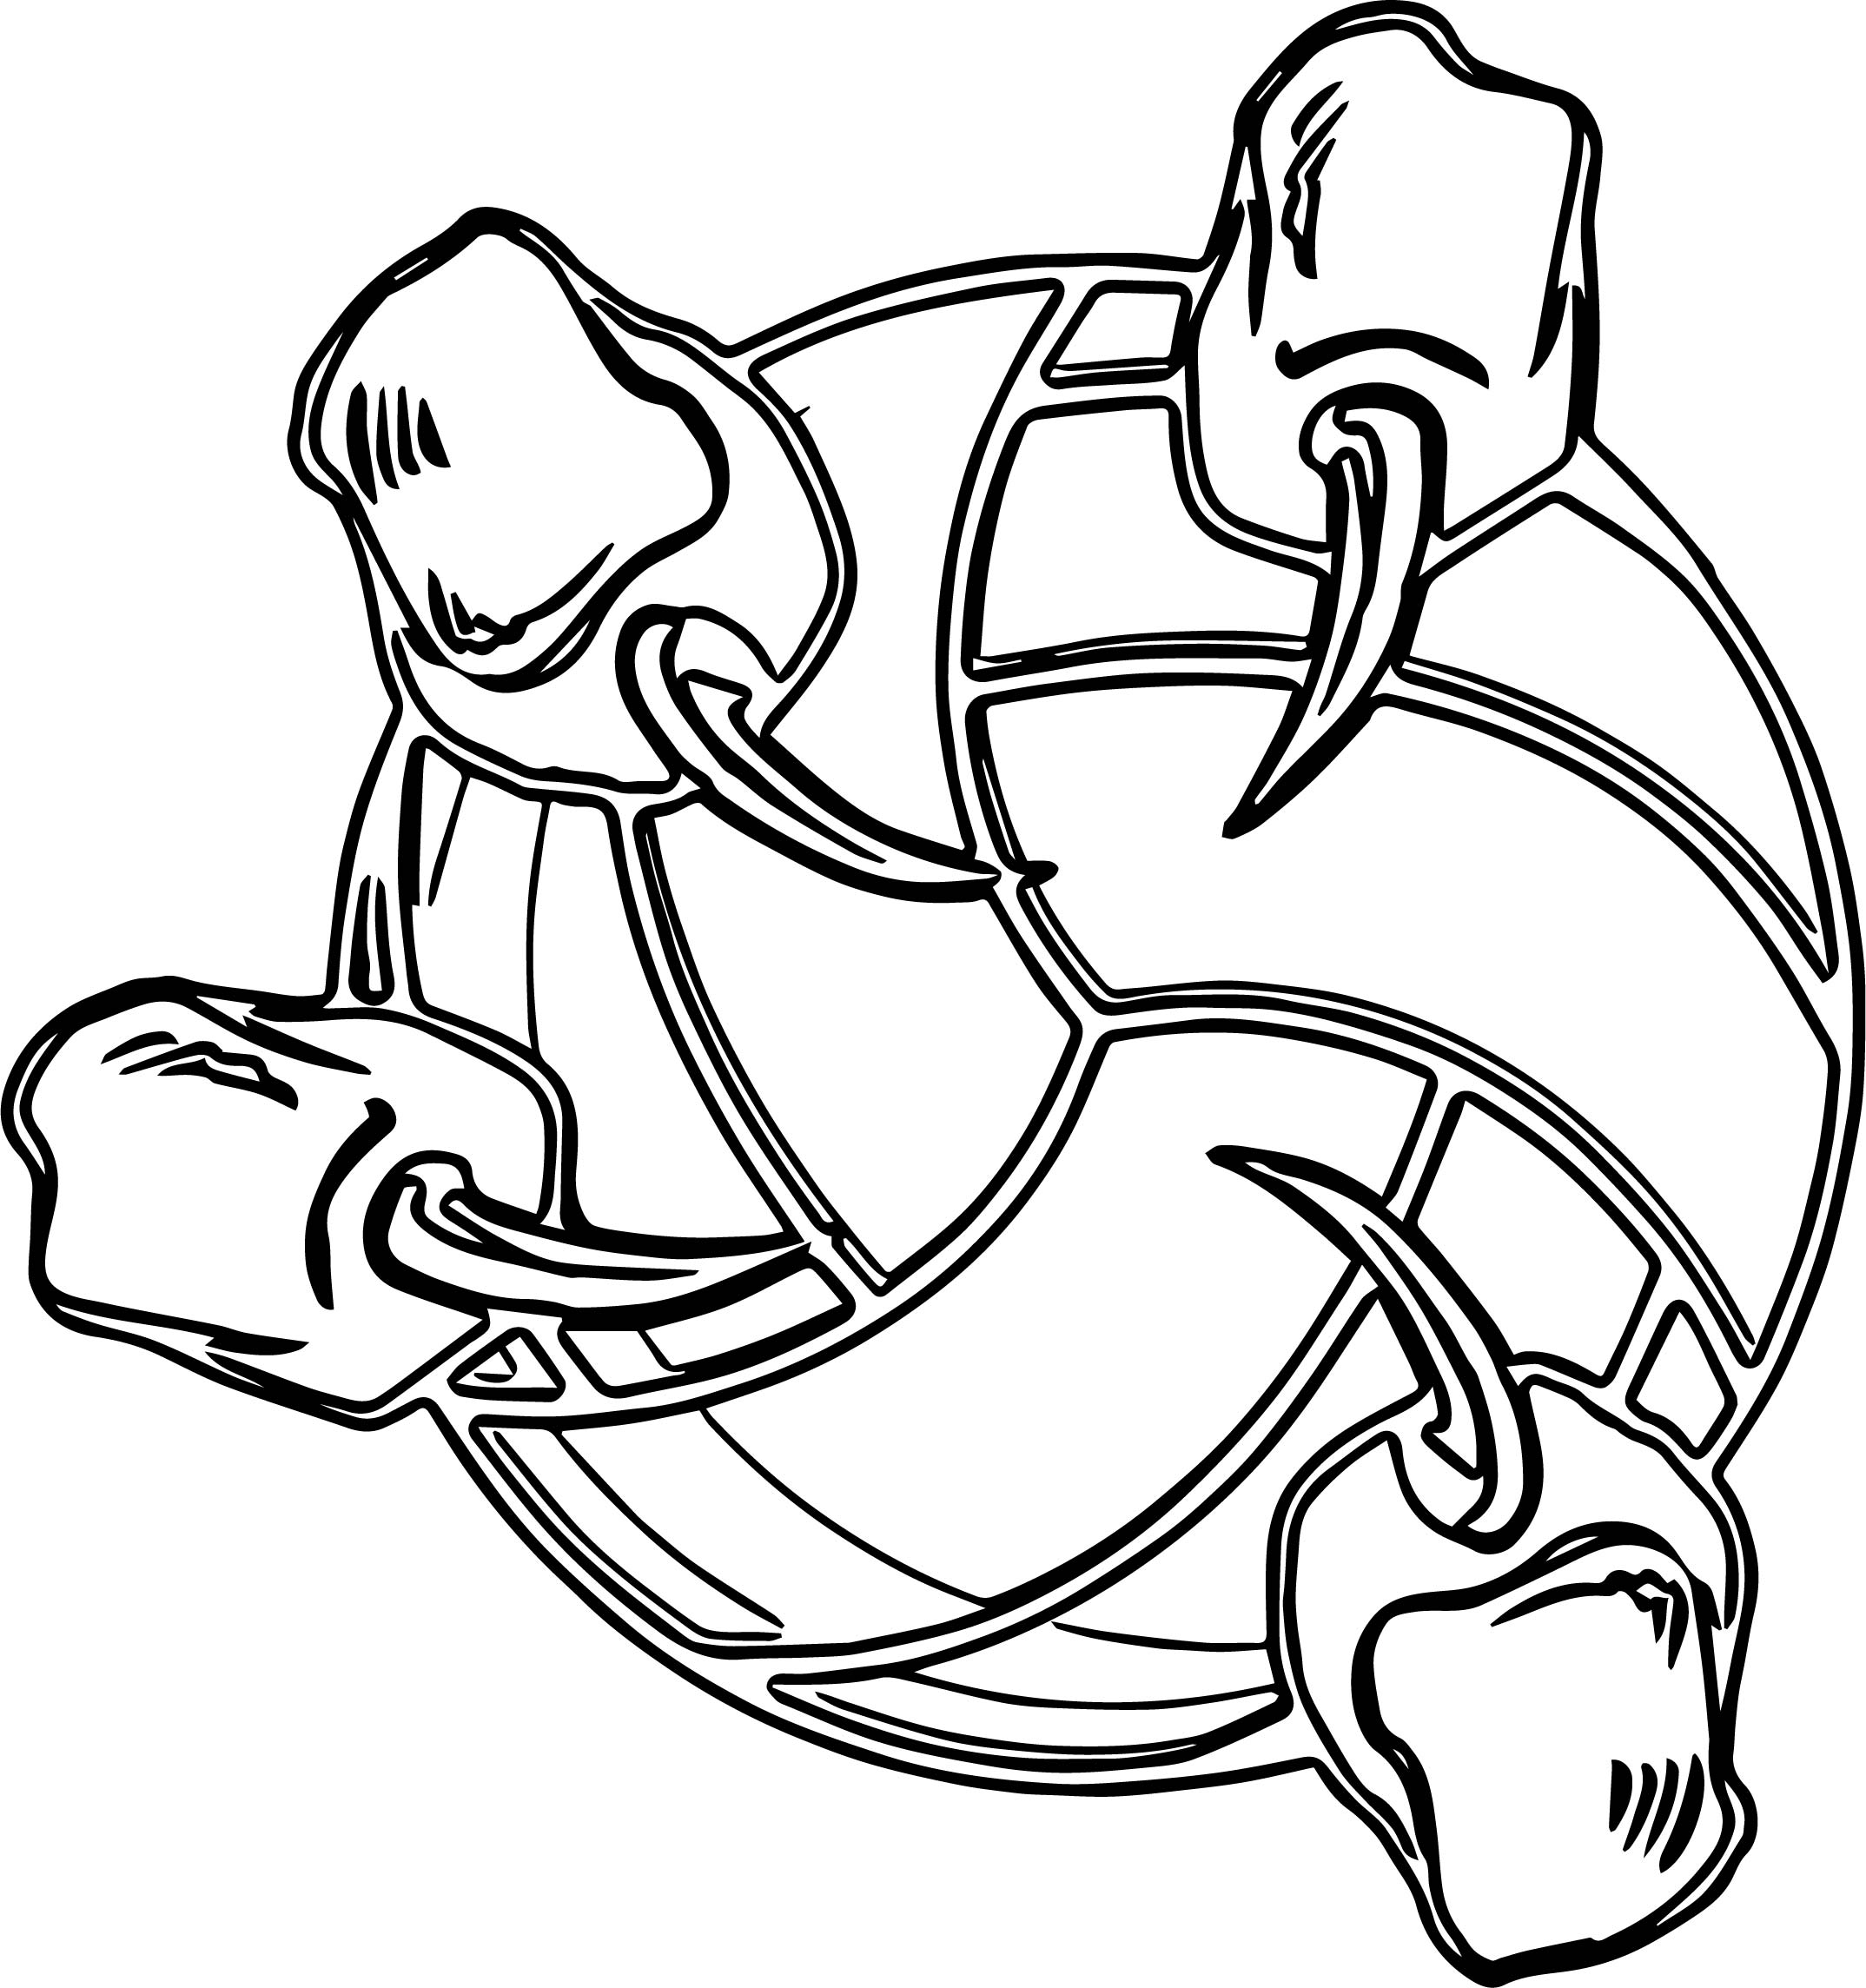 Volleyball Coloring Pages | Free download on ClipArtMag